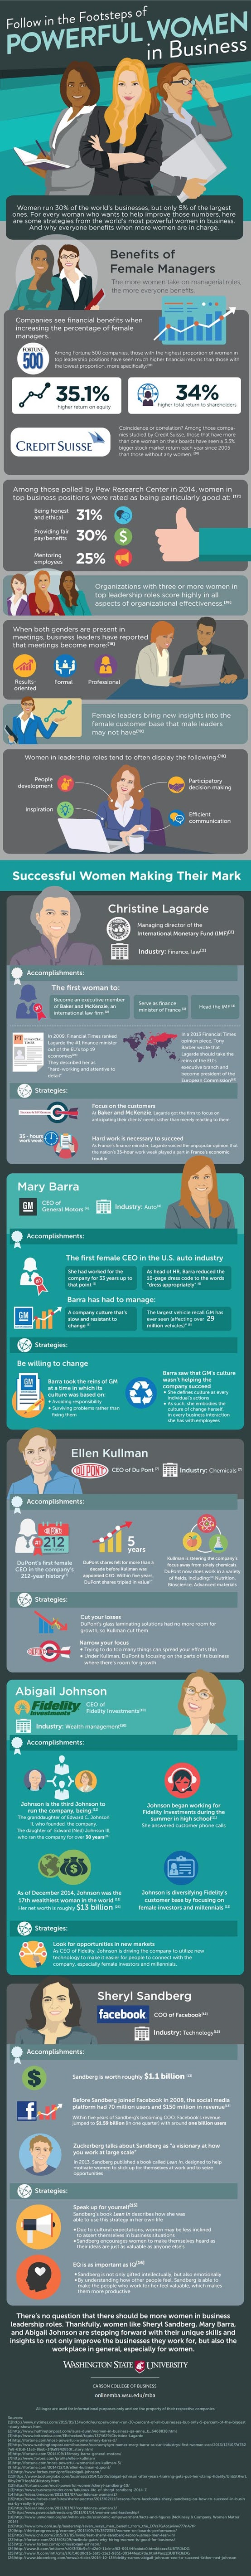 Women In Business #infographic #Business #Women #Women In Business